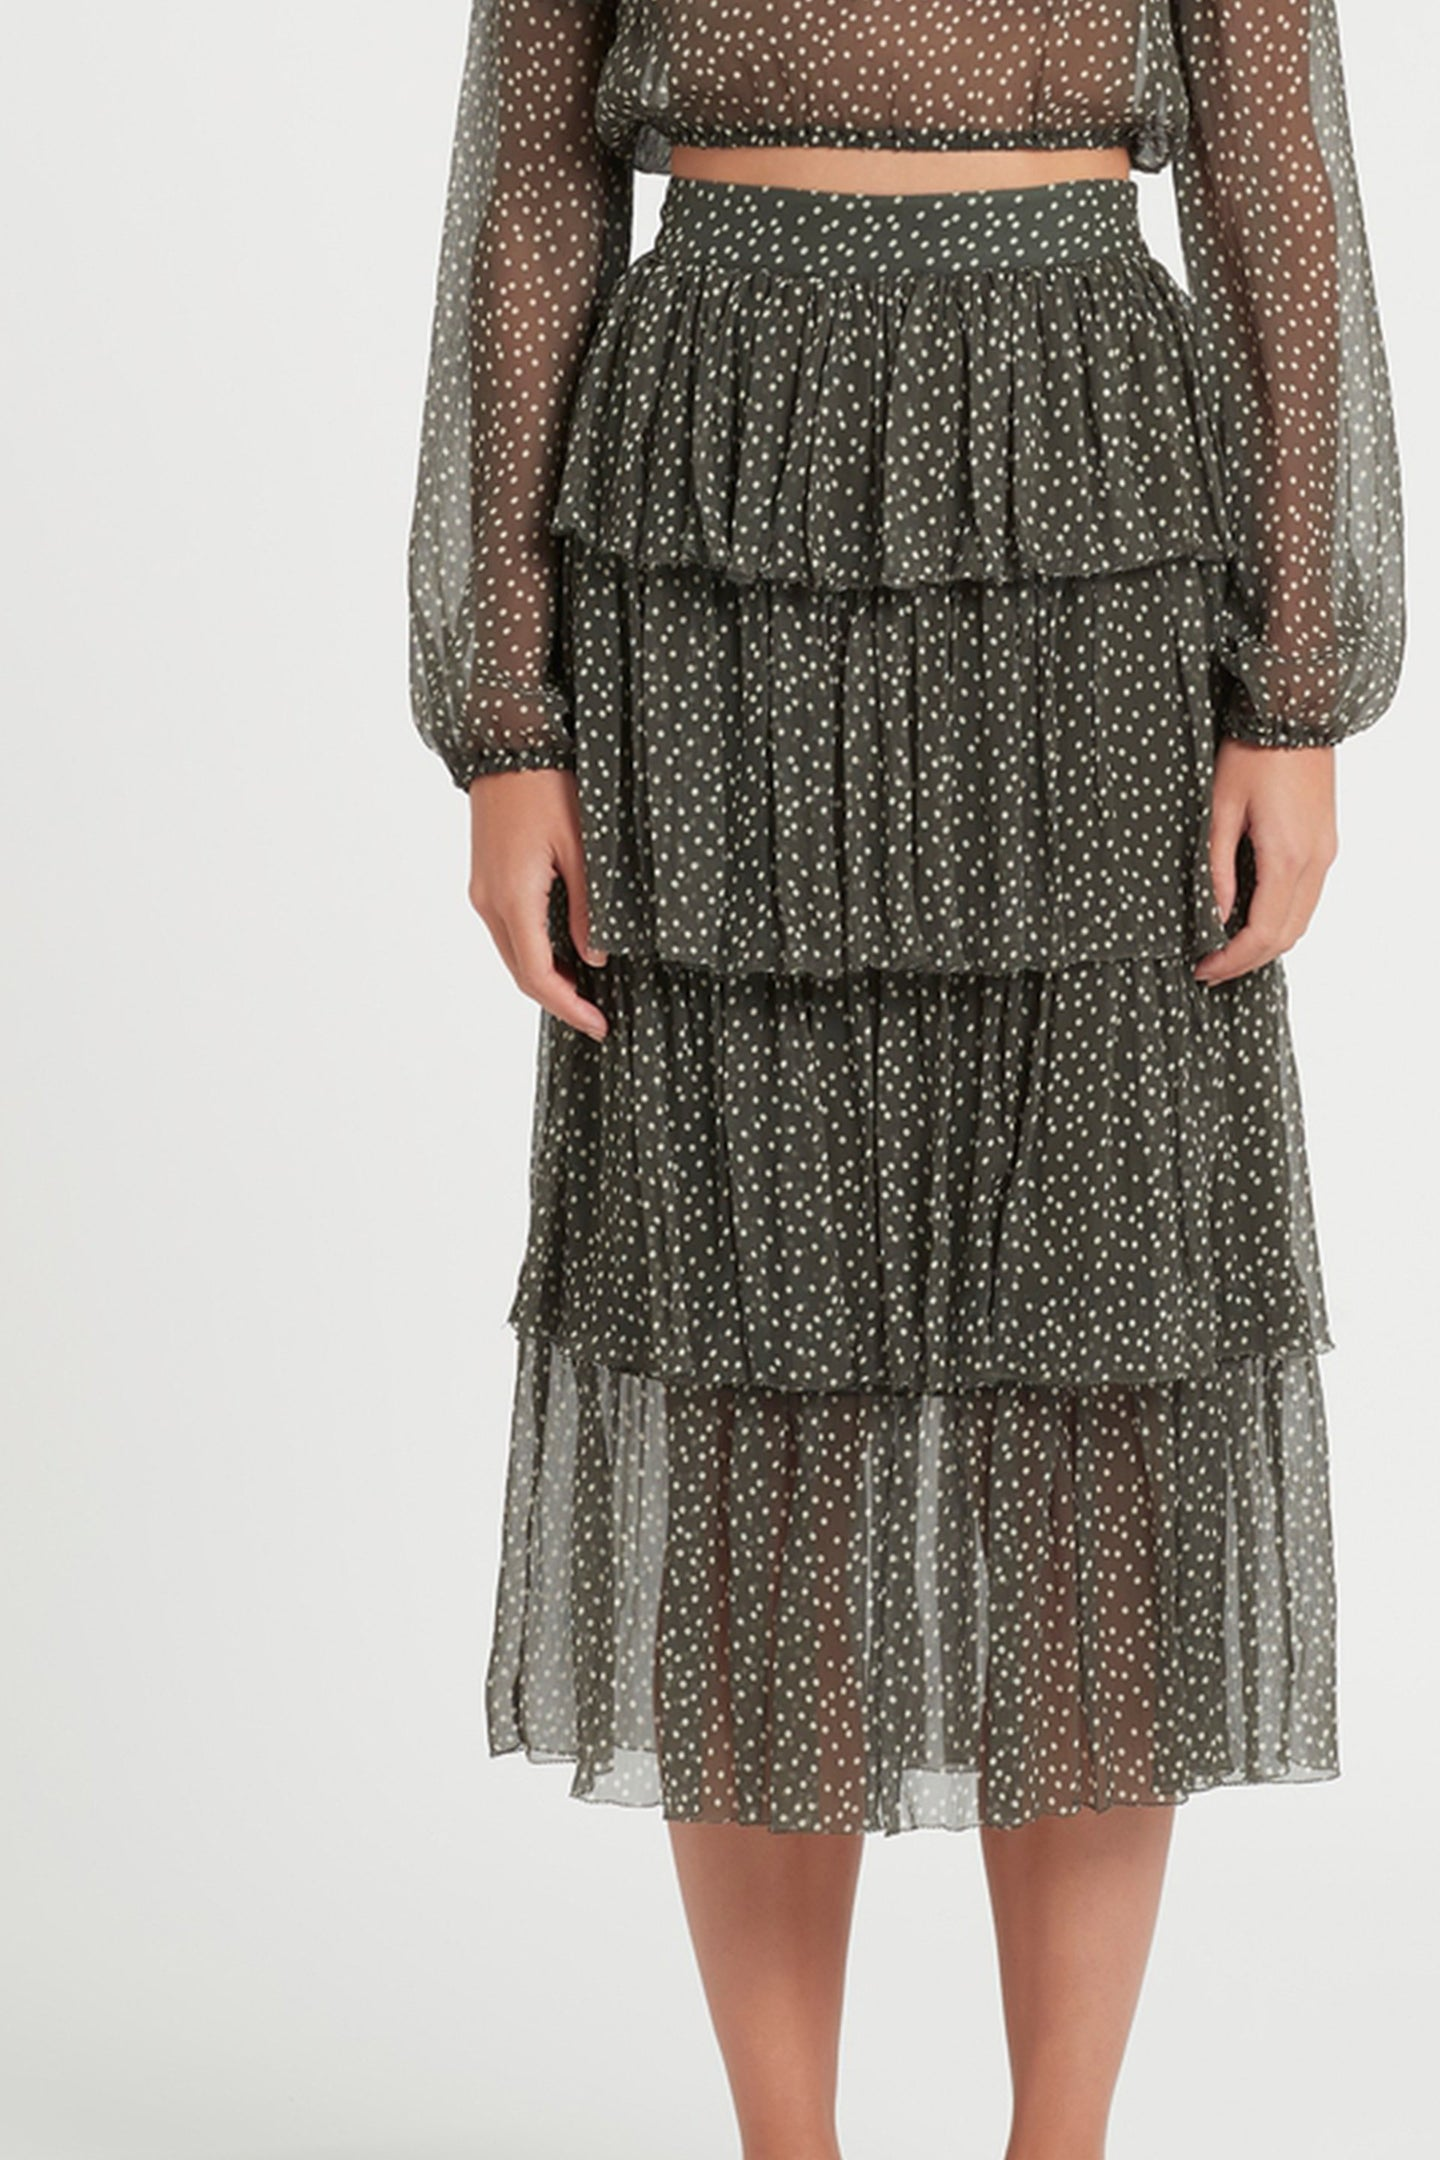 SIR the label ISABELLA TIERED SKIRT OLIVE POLKA DOT